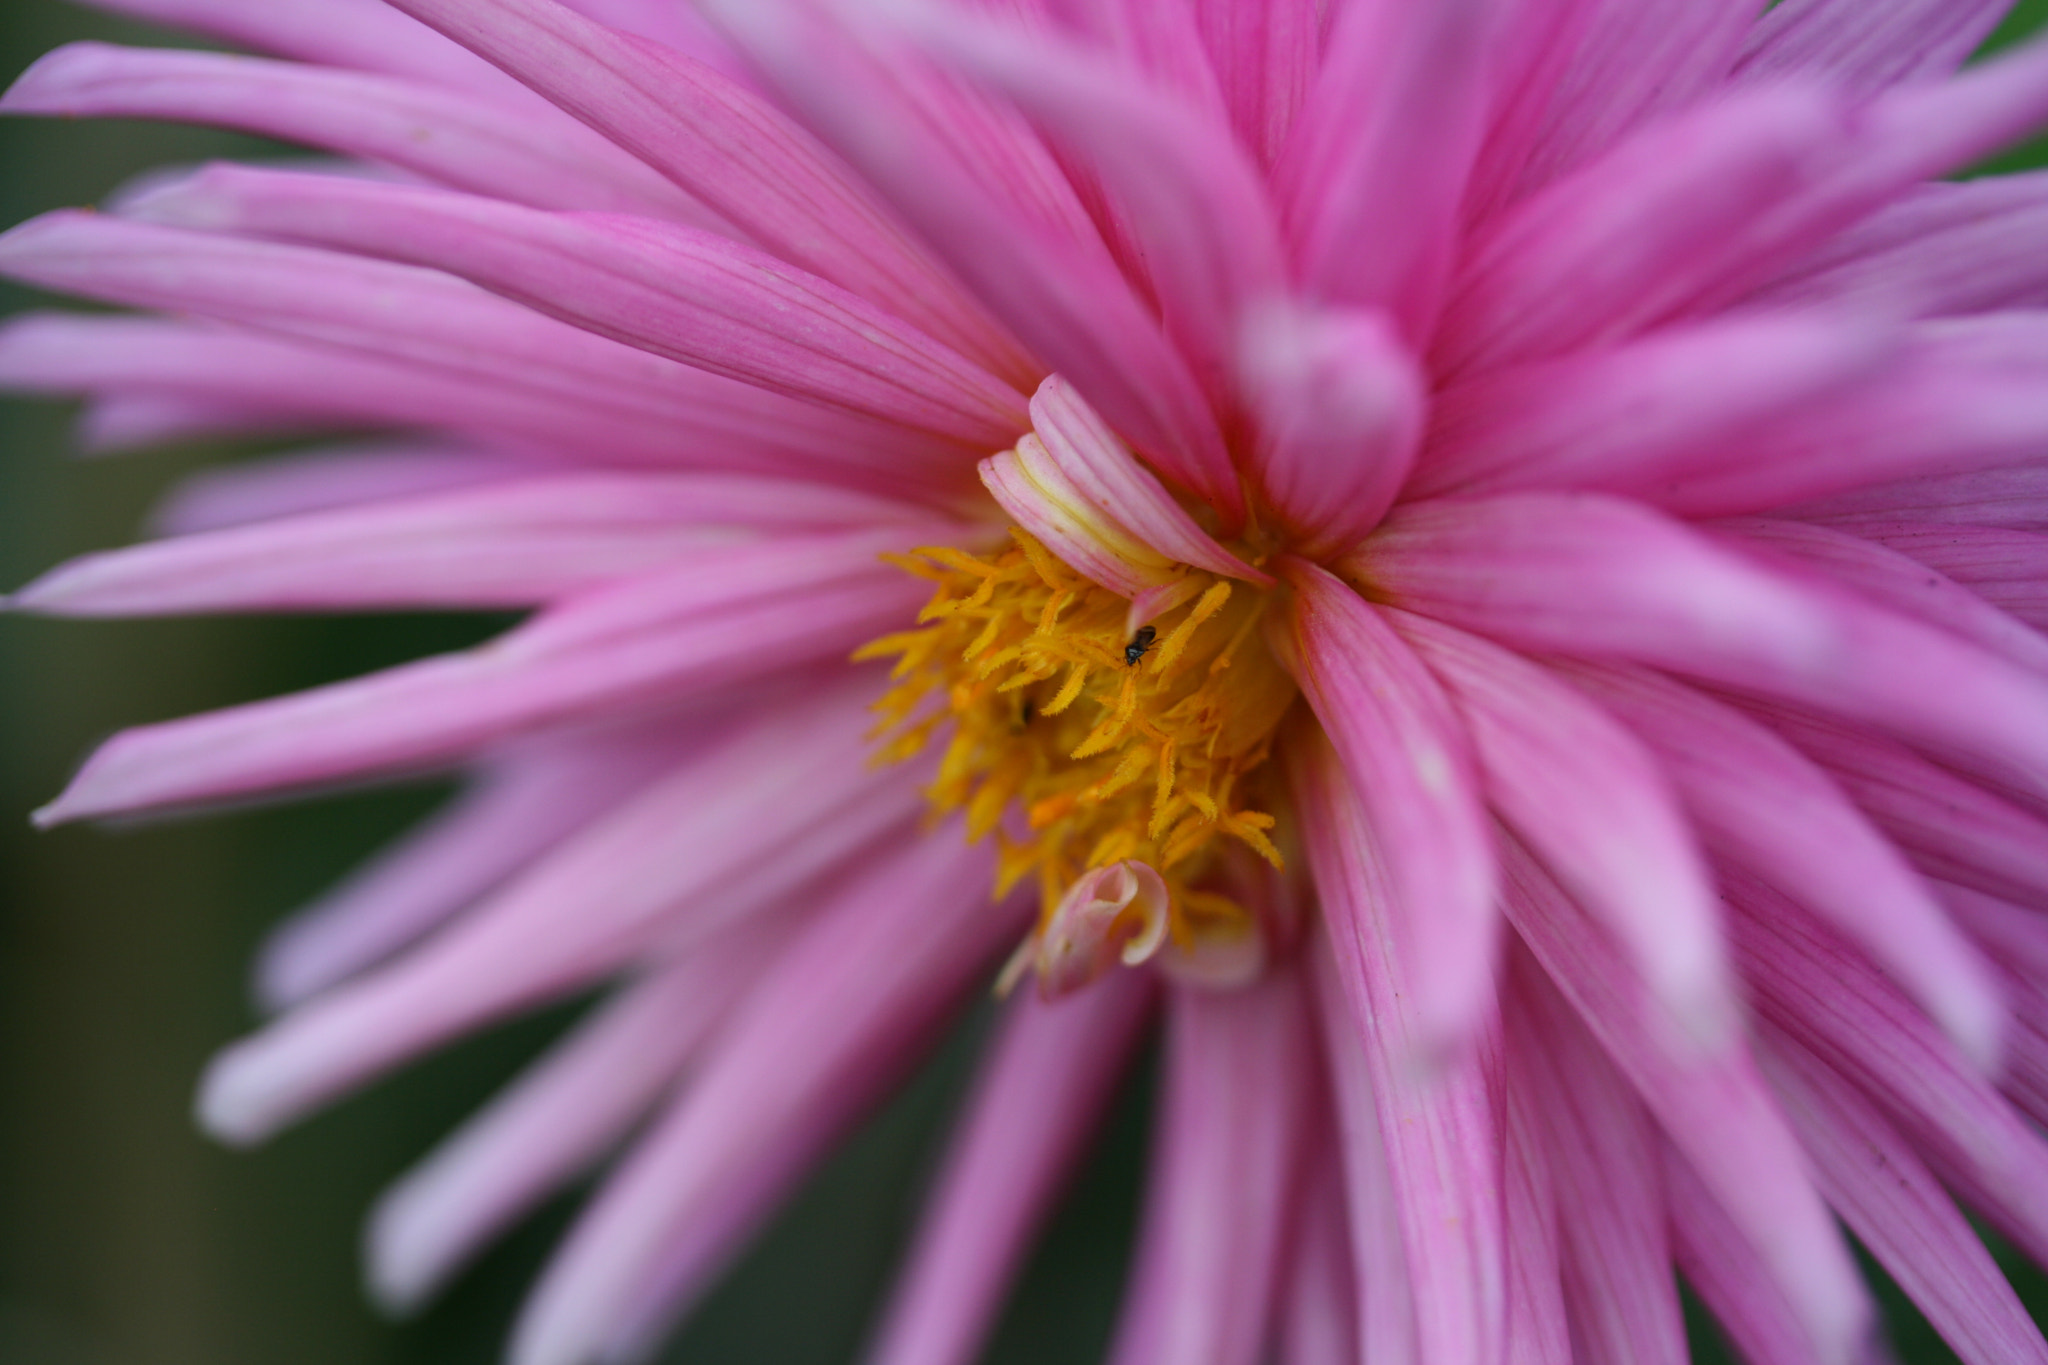 Photograph Pink Punk Flower by Suzy Shipman on 500px